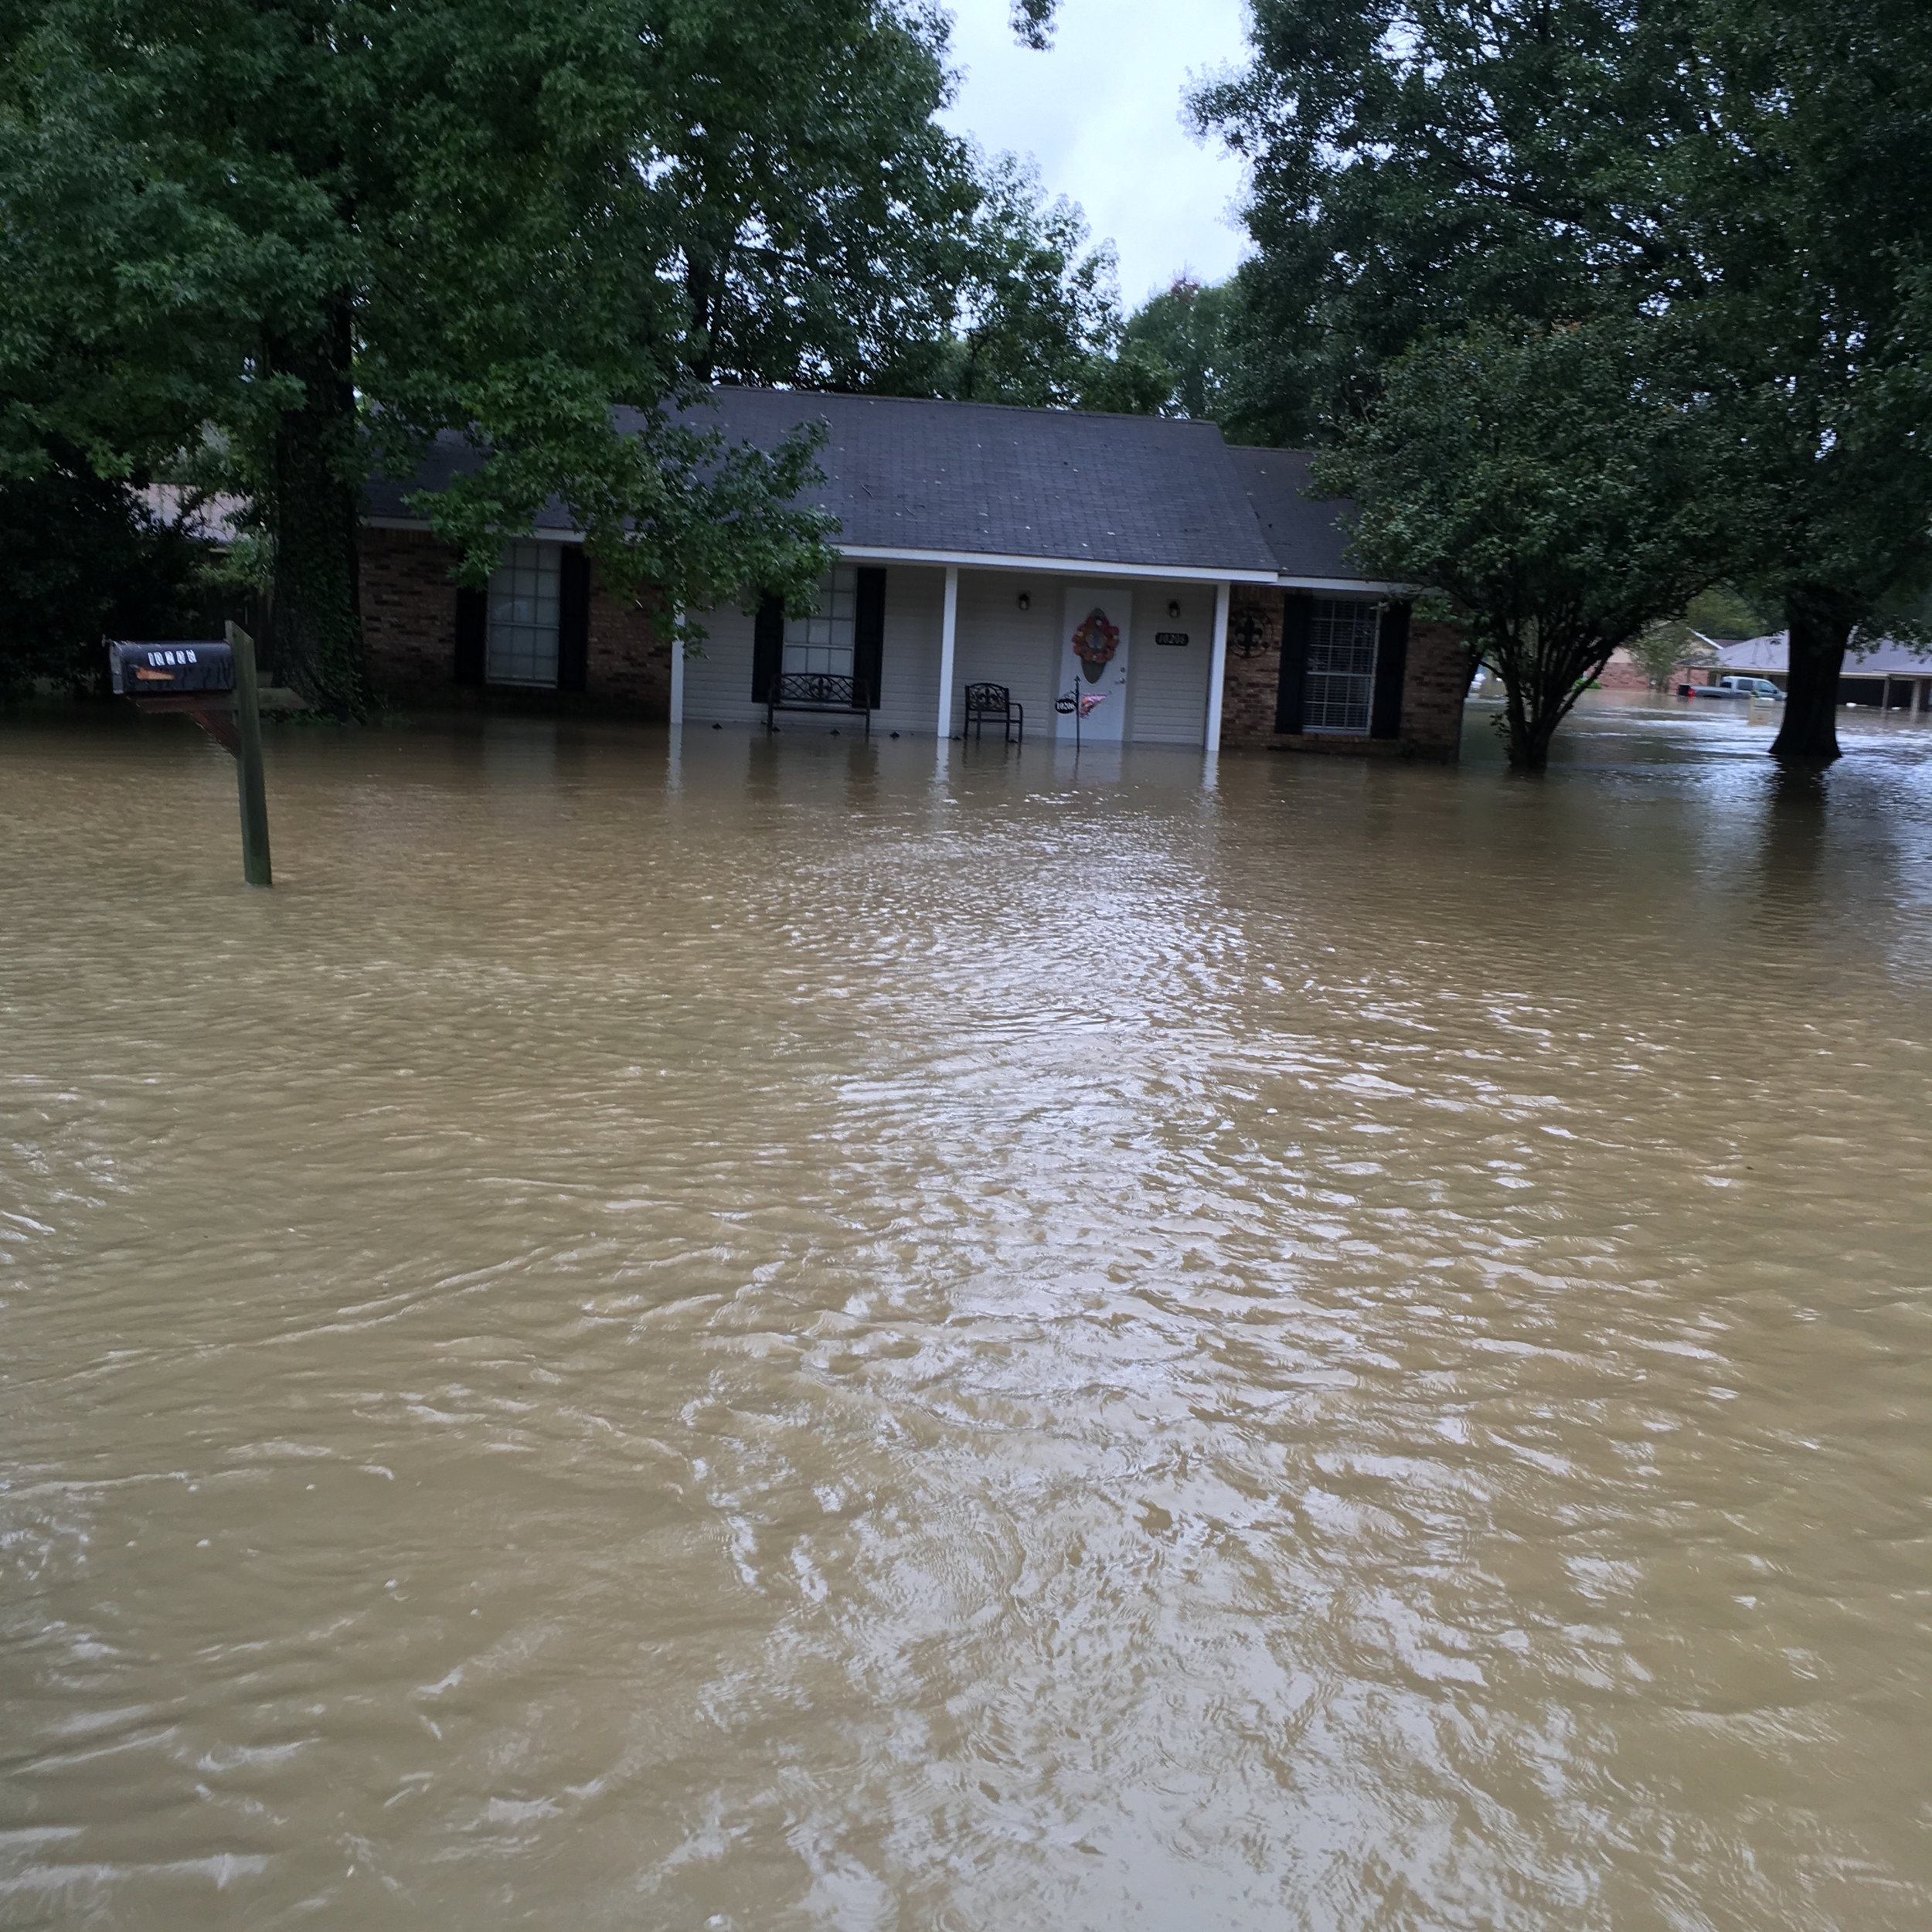 This is one of our employee's homes.  The photo was taken as they were being evacuated by boat.